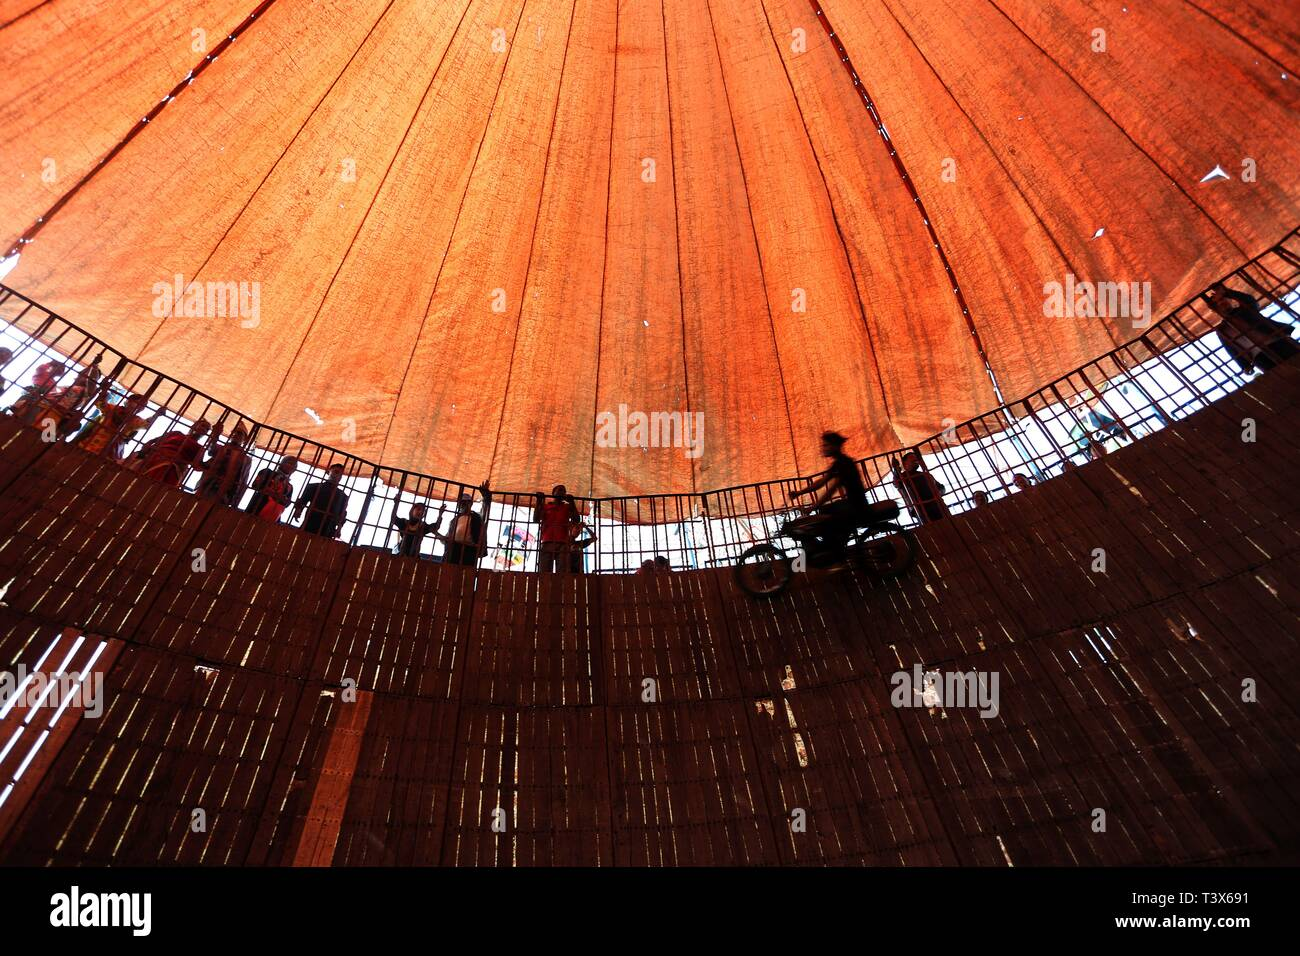 Bhaktapur, Nepal. 12th Apr, 2019. A stuntman performs his skills on his vehicle inside the 'Well of Death' at a fair organized in celebration of Nepali New Year in Bhaktapur, Nepal on April 12, 2019. Credit: Sunil Sharma/Xinhua/Alamy Live News - Stock Image